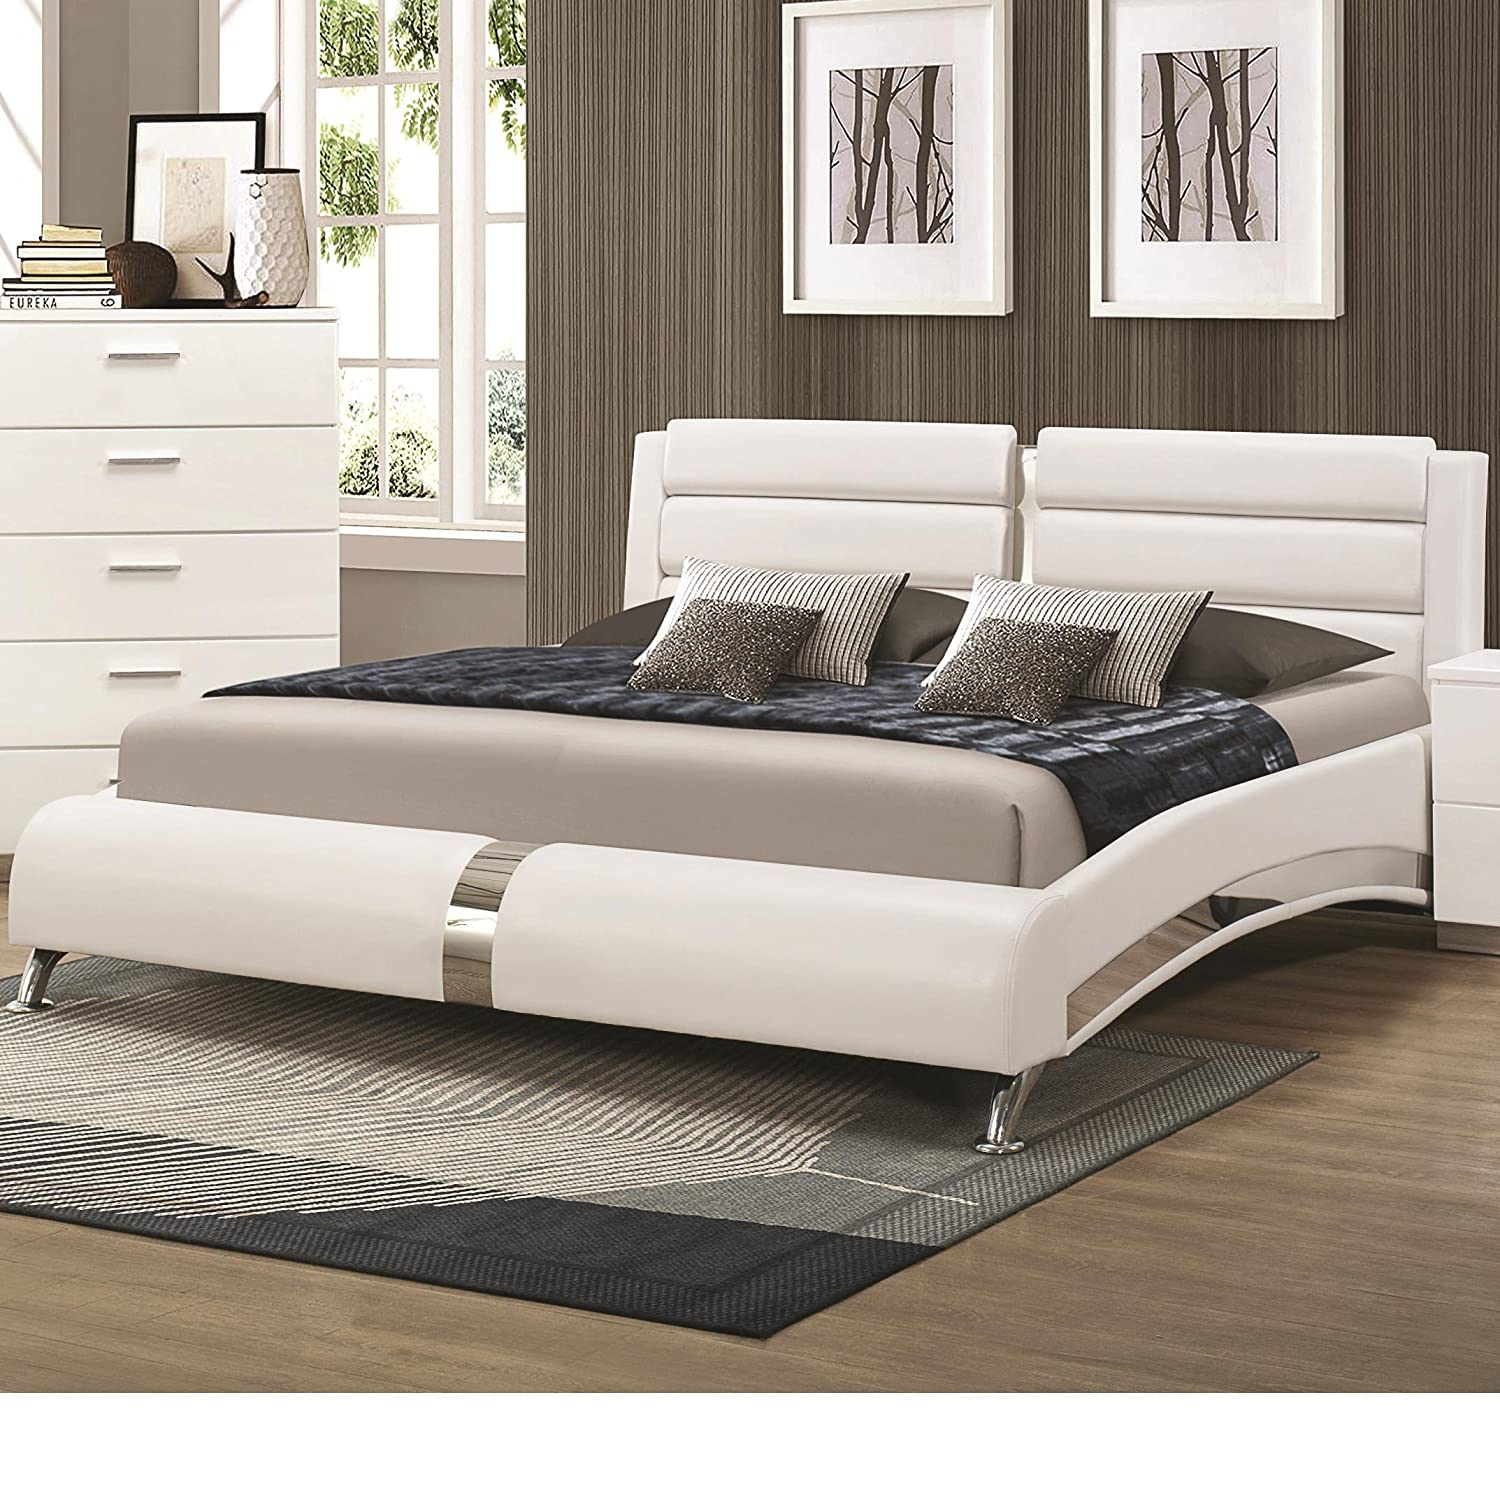 Amazon.com: Coaster 300345KW White California King Size Bed With ...